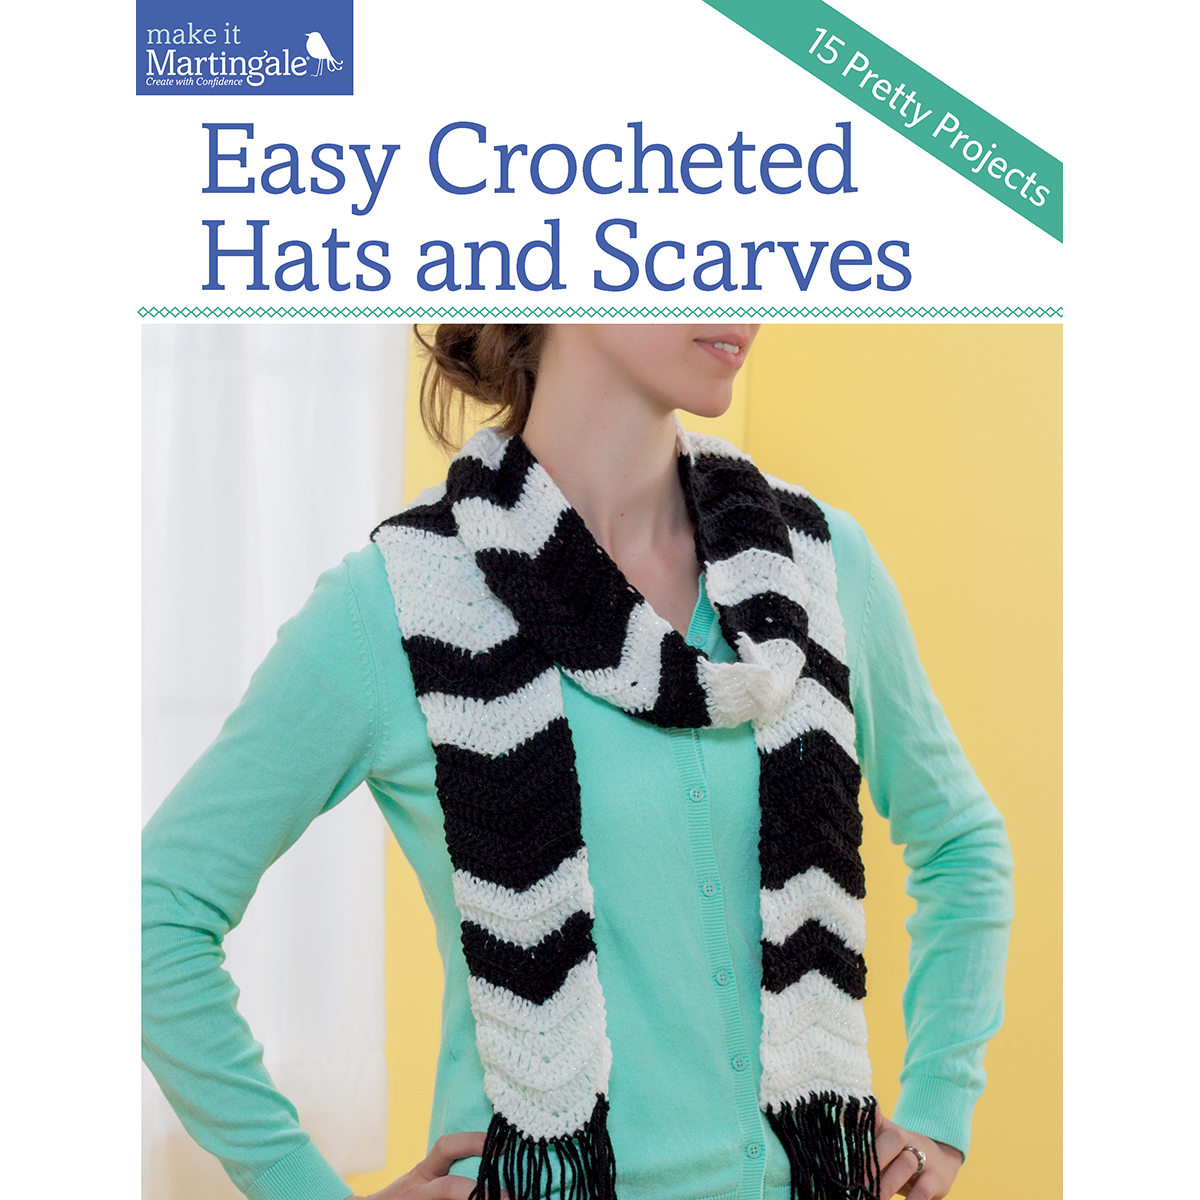 Martingale & Company-Easy Crocheted Hats & Scarves